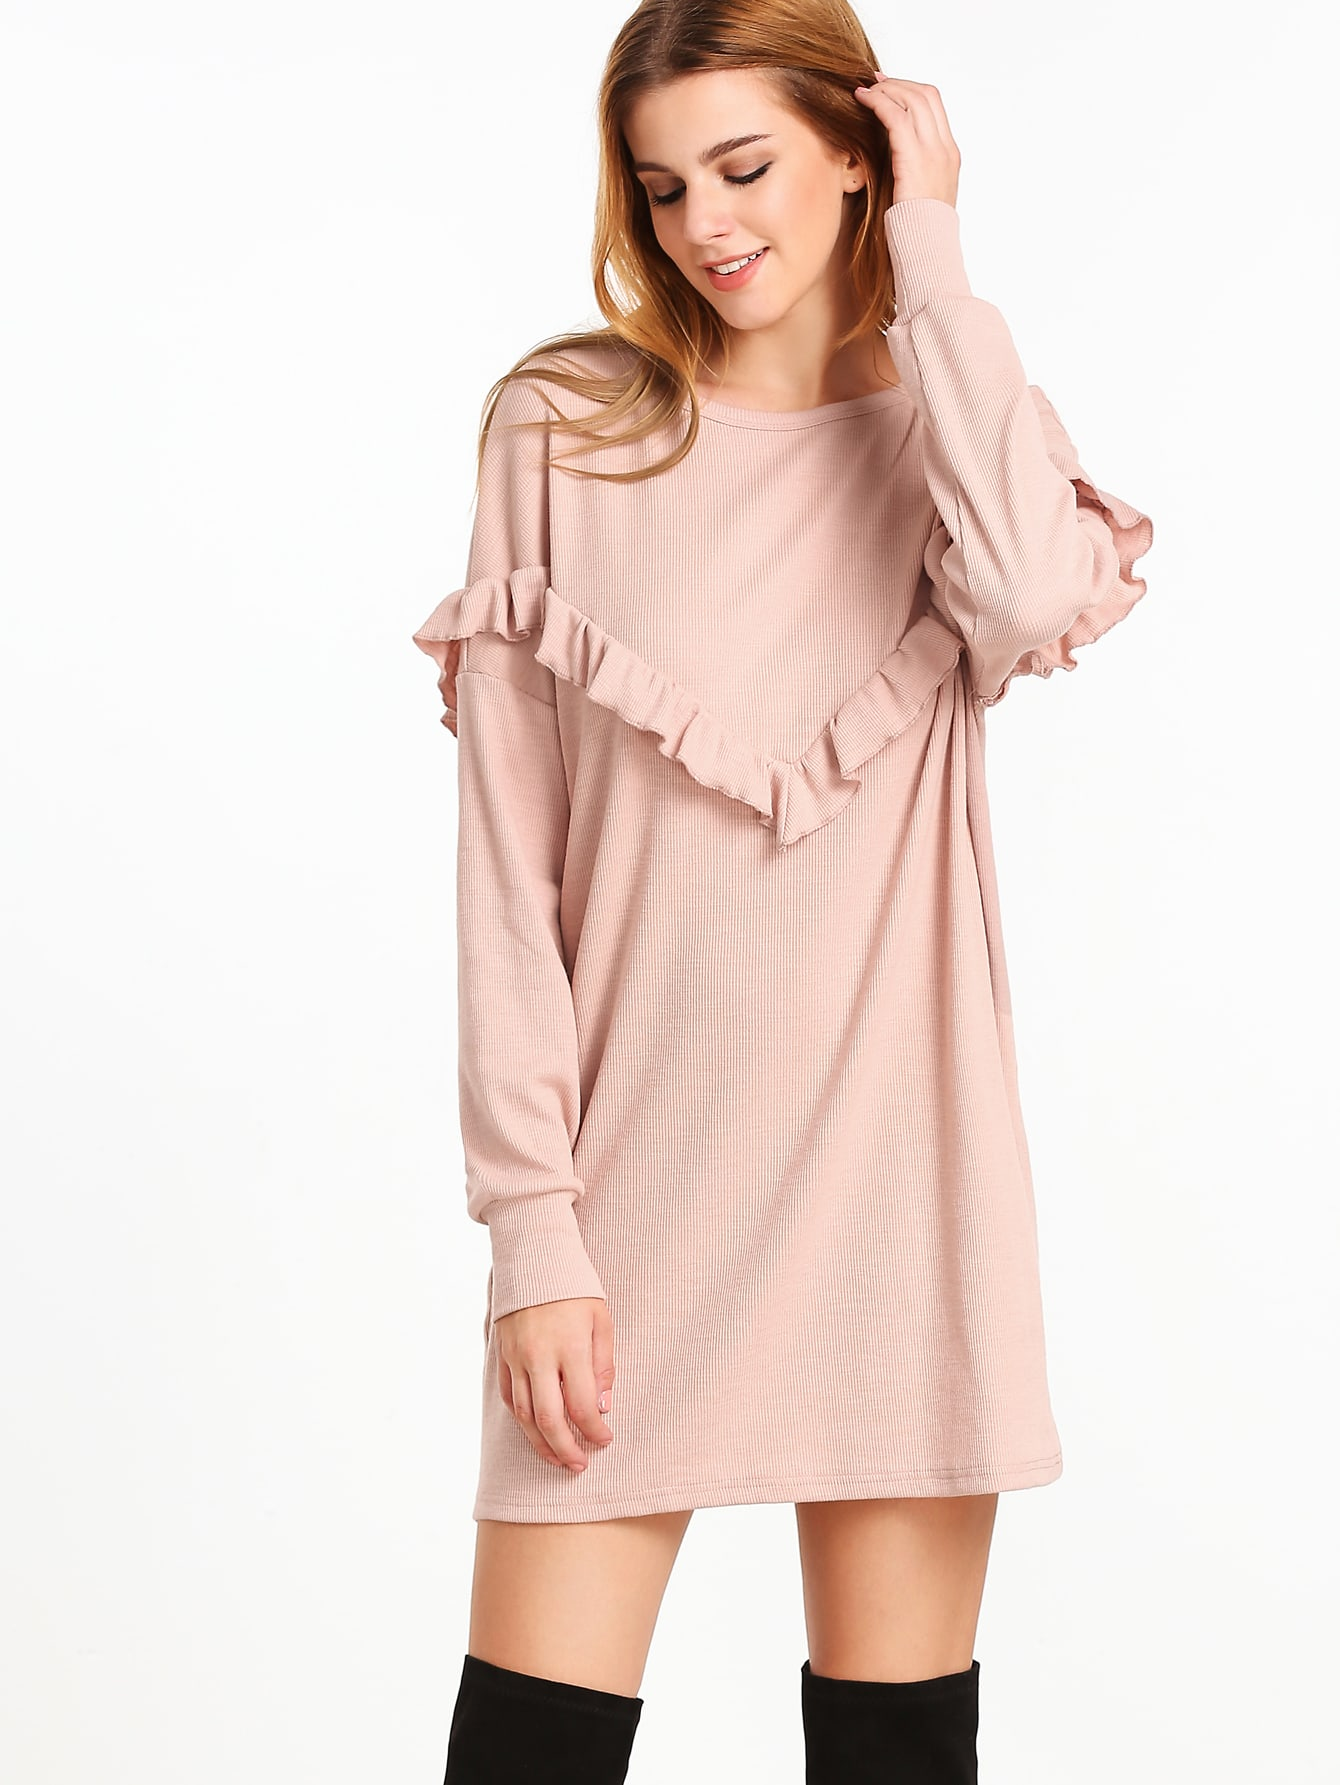 Pale Pink Ruffle Trim Drop Shoulder Ribbed Dress dress161124713